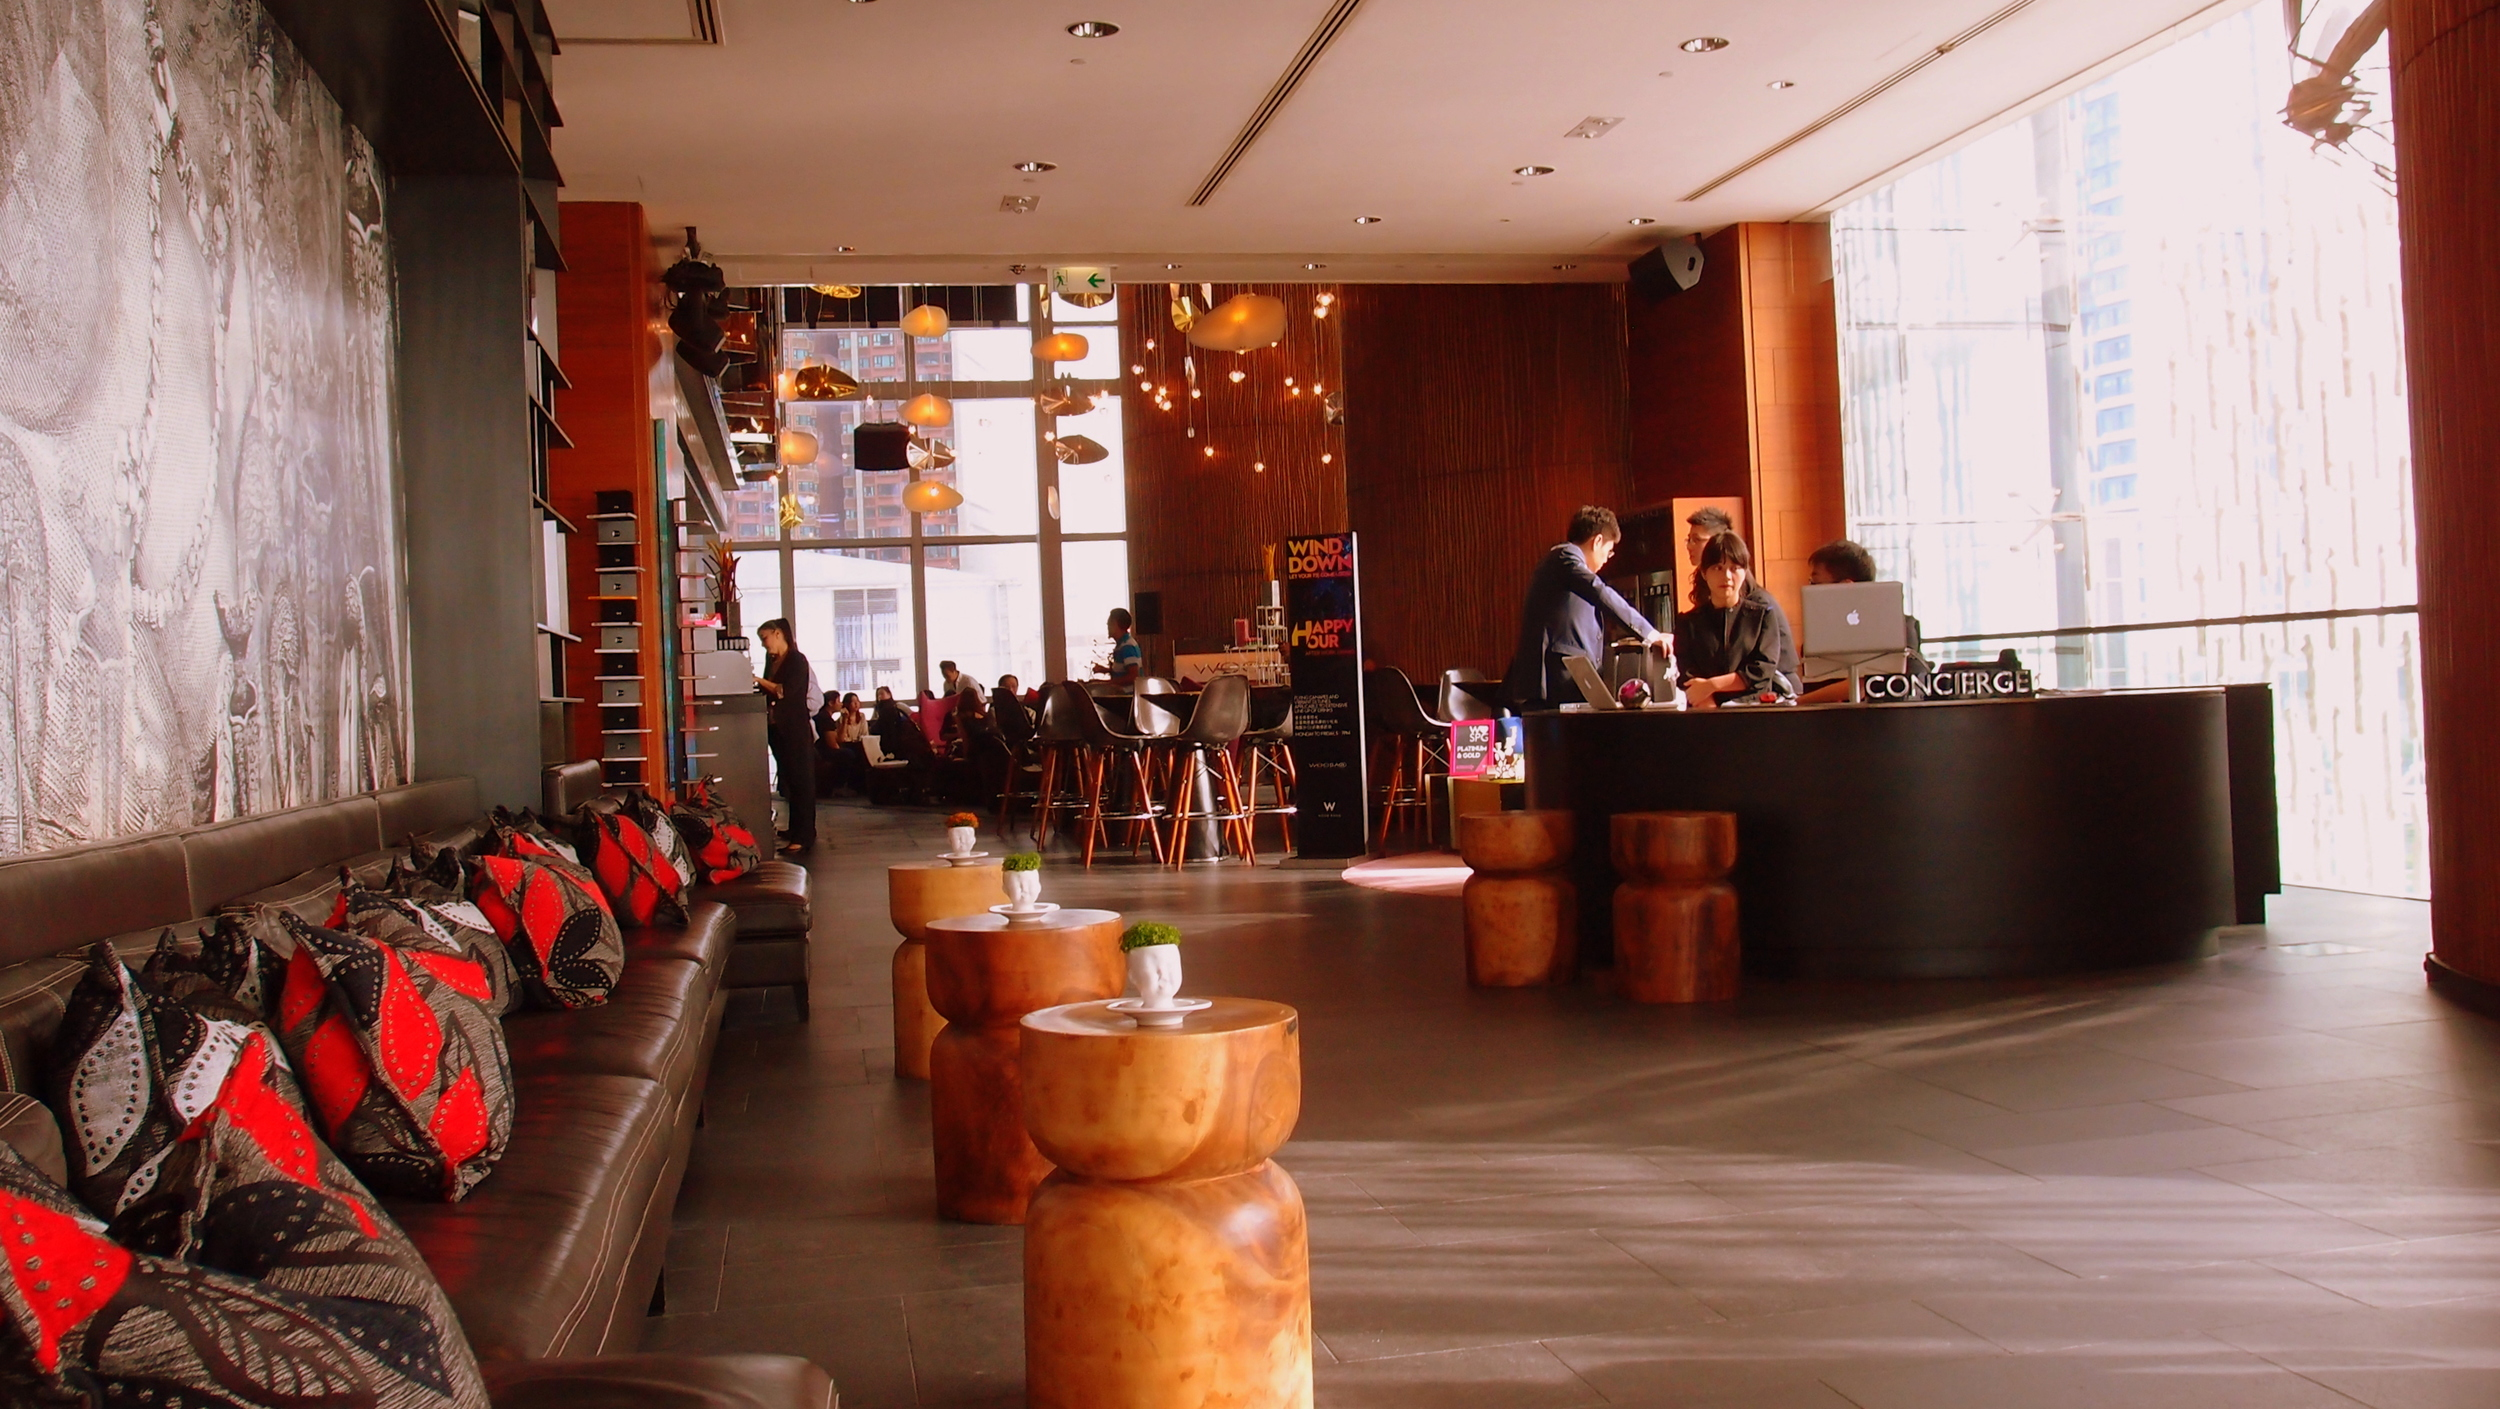 Just one of the lobbies in the W Hotel